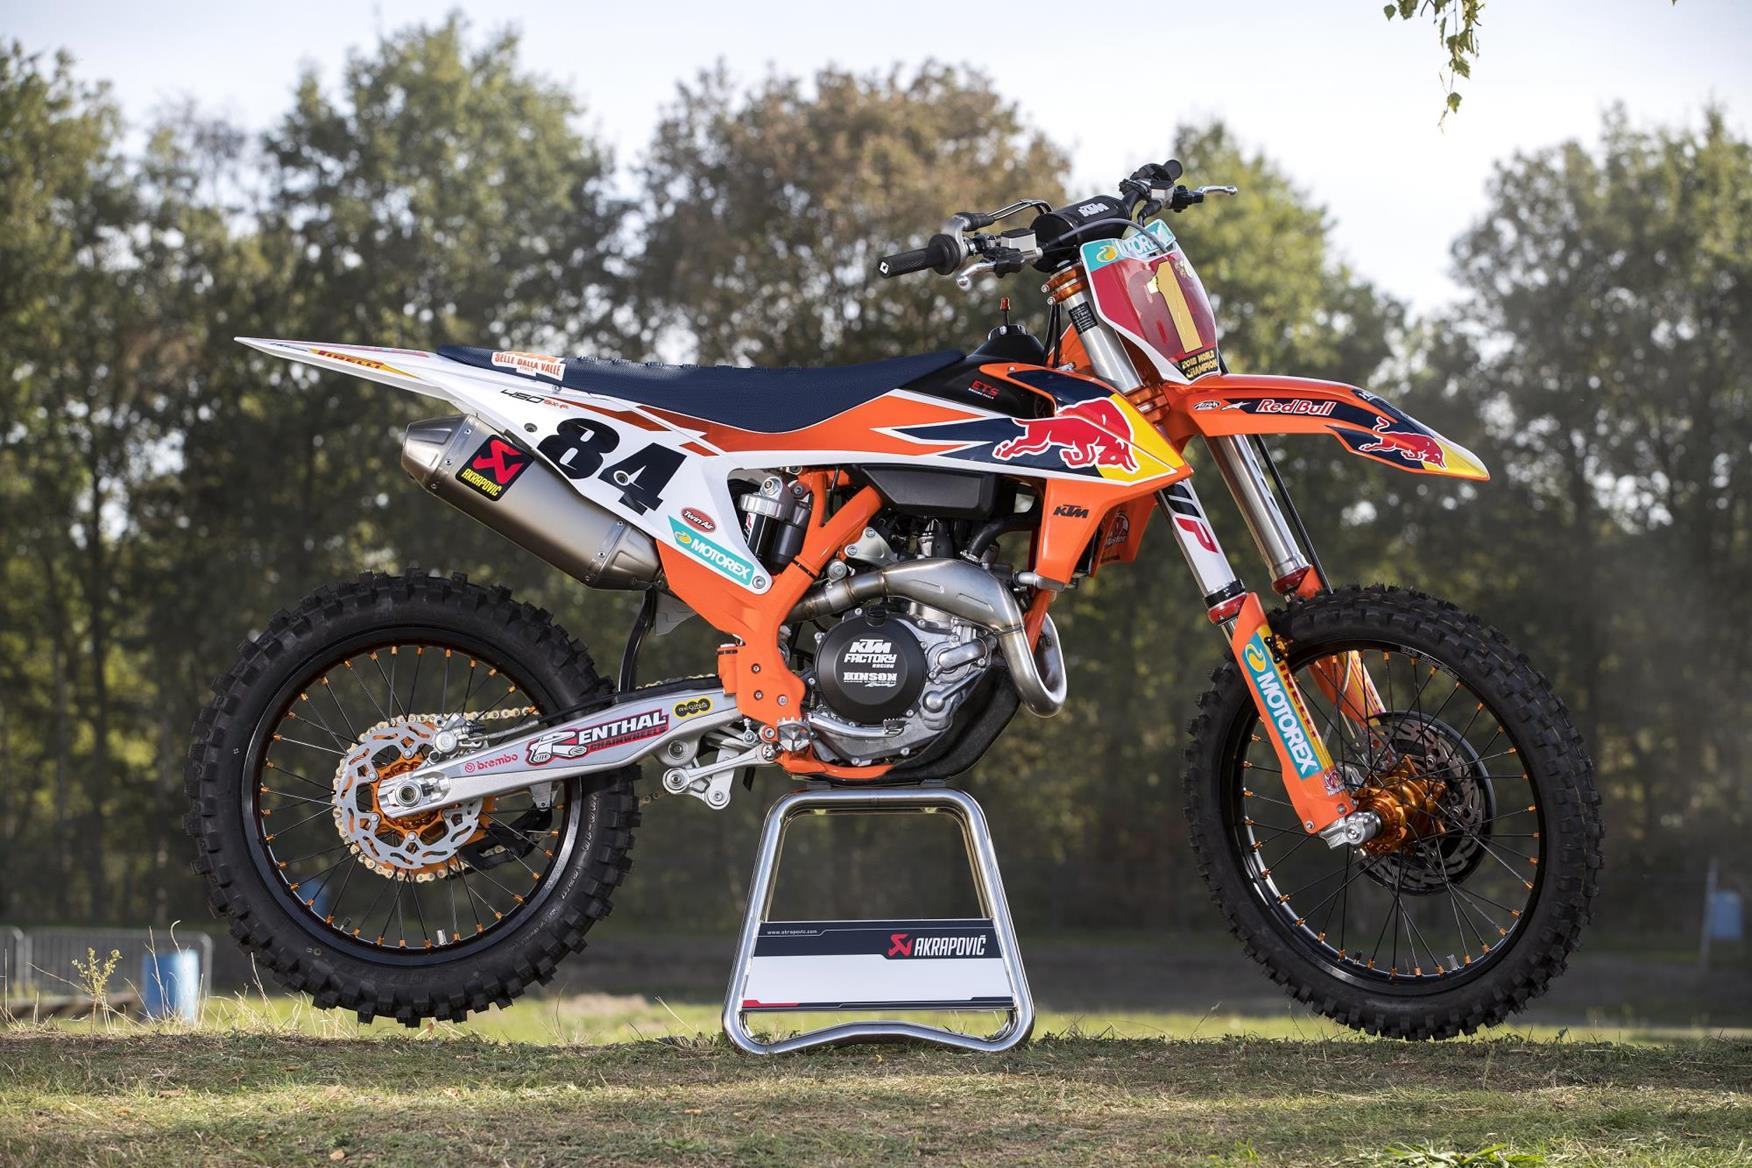 2019 Ktm Sxf >> Limited edition Jeffrey Herlings KTM 450 SX-F released | MCN